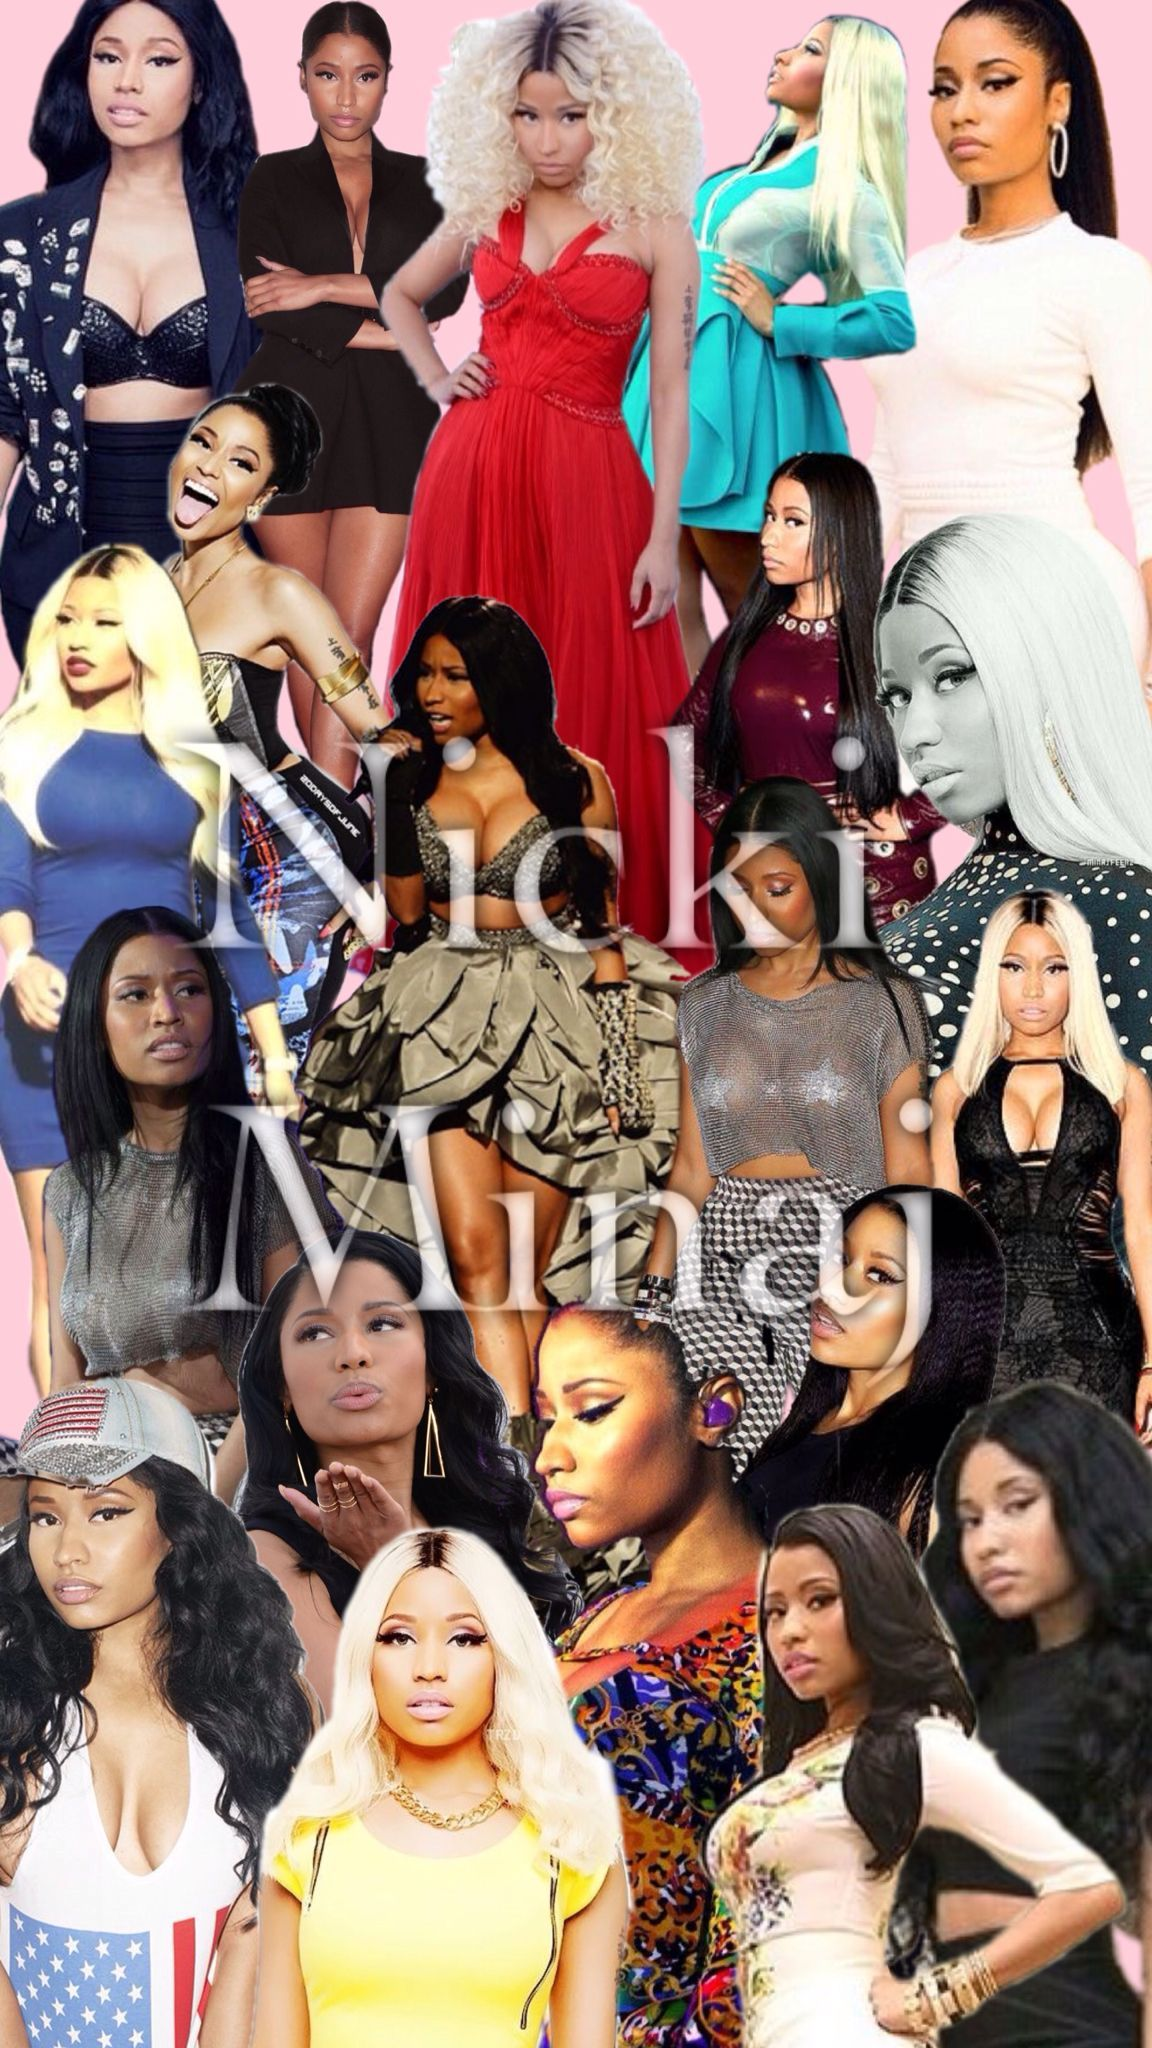 1152x2048 Nicki Minaj iPhone wallpaper | Nicki Minaj | Pinterest | Nicki minaj ...